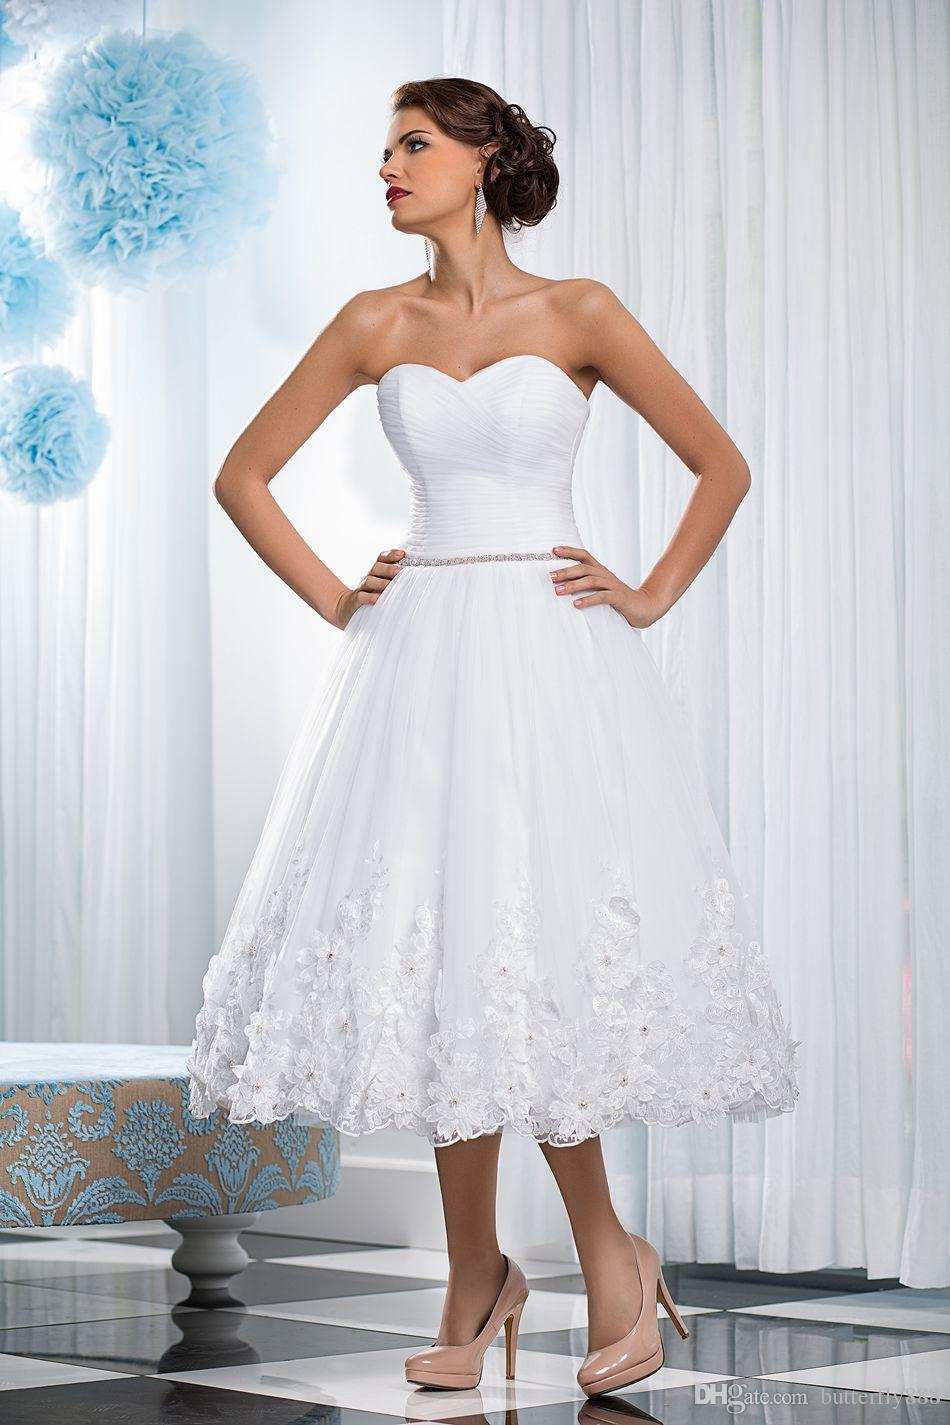 white short wedding dresses new sweetheart lace flower pleaded beaded belt puffy wedding dress plus size